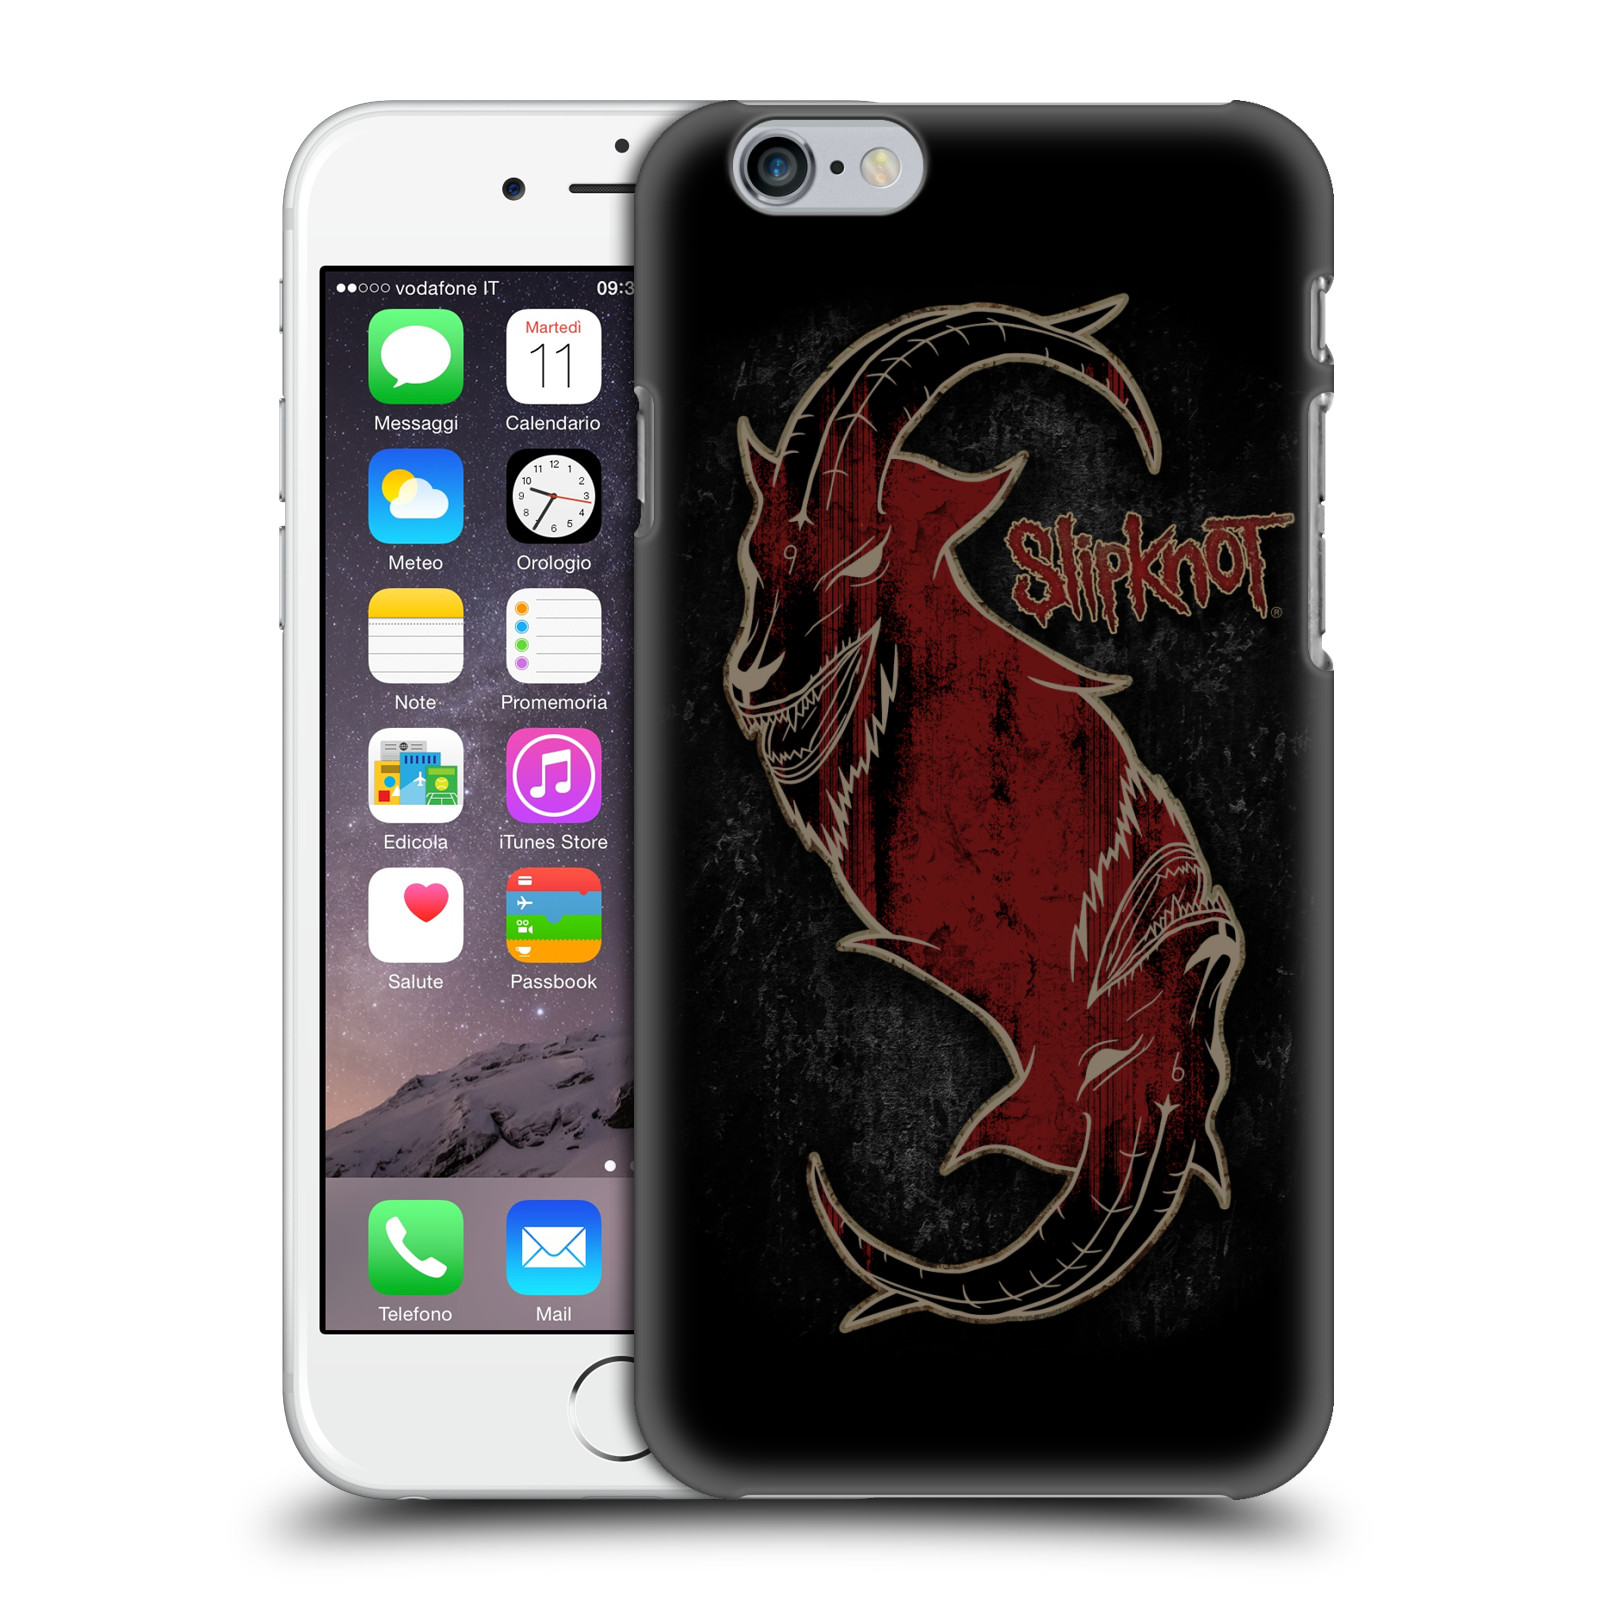 Plastové pouzdro na mobil Apple iPhone 6 HEAD CASE Slipknot - Rudý kozel